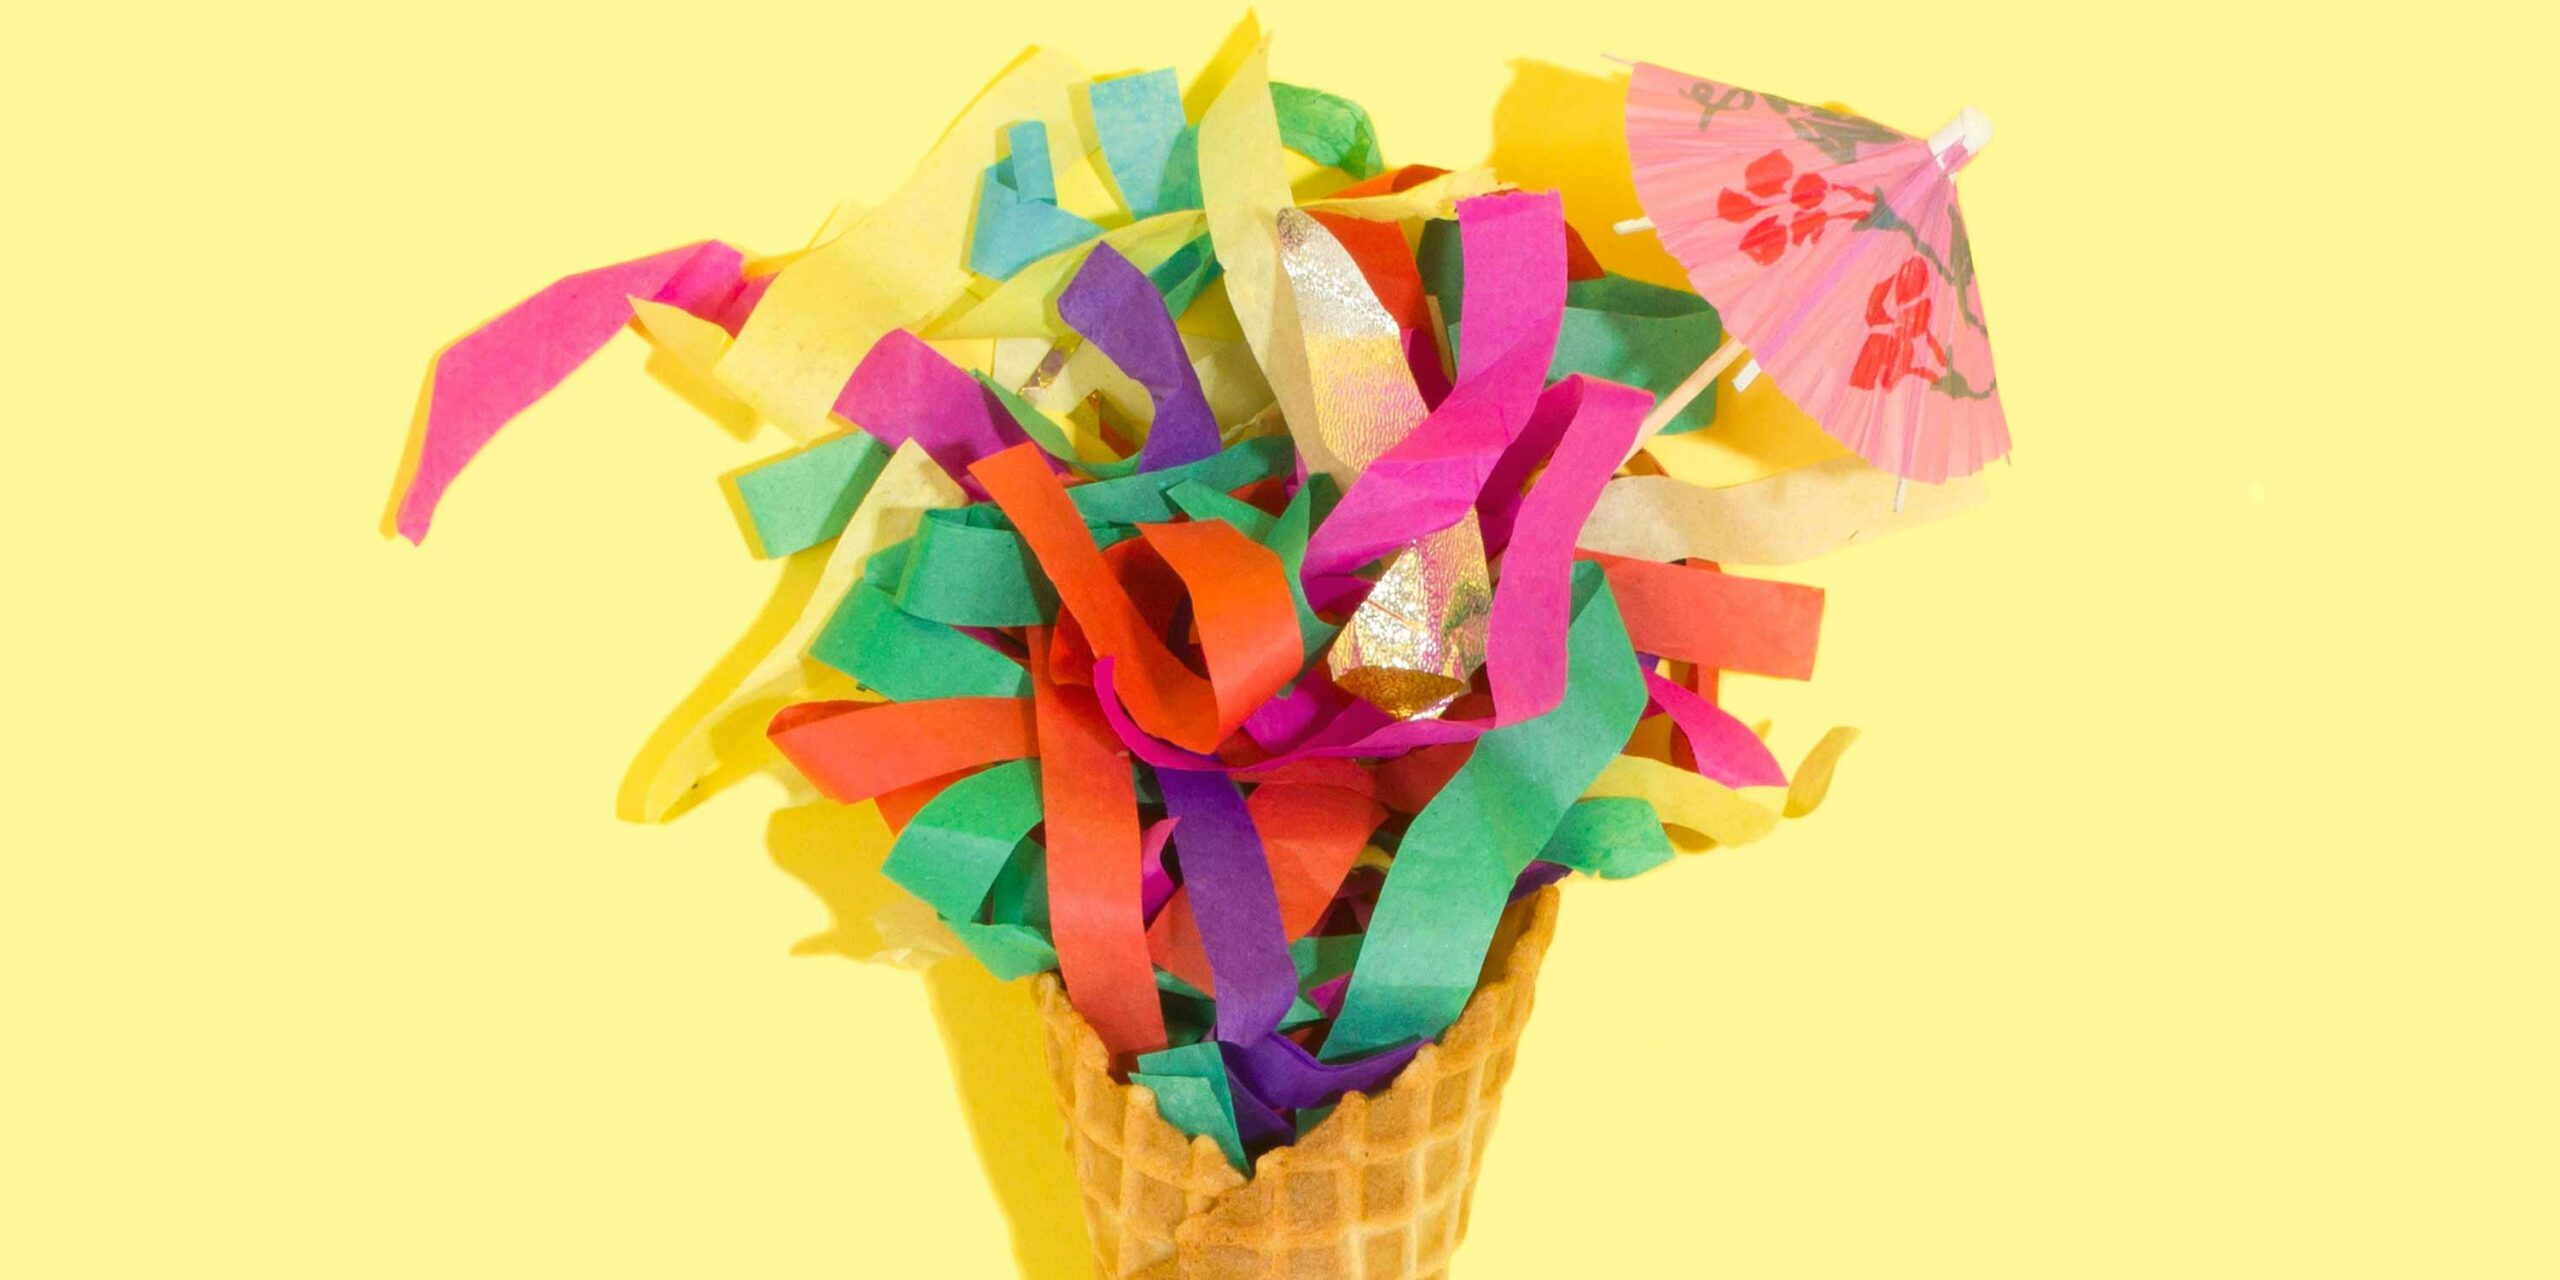 21 Paper Hacks for Parties